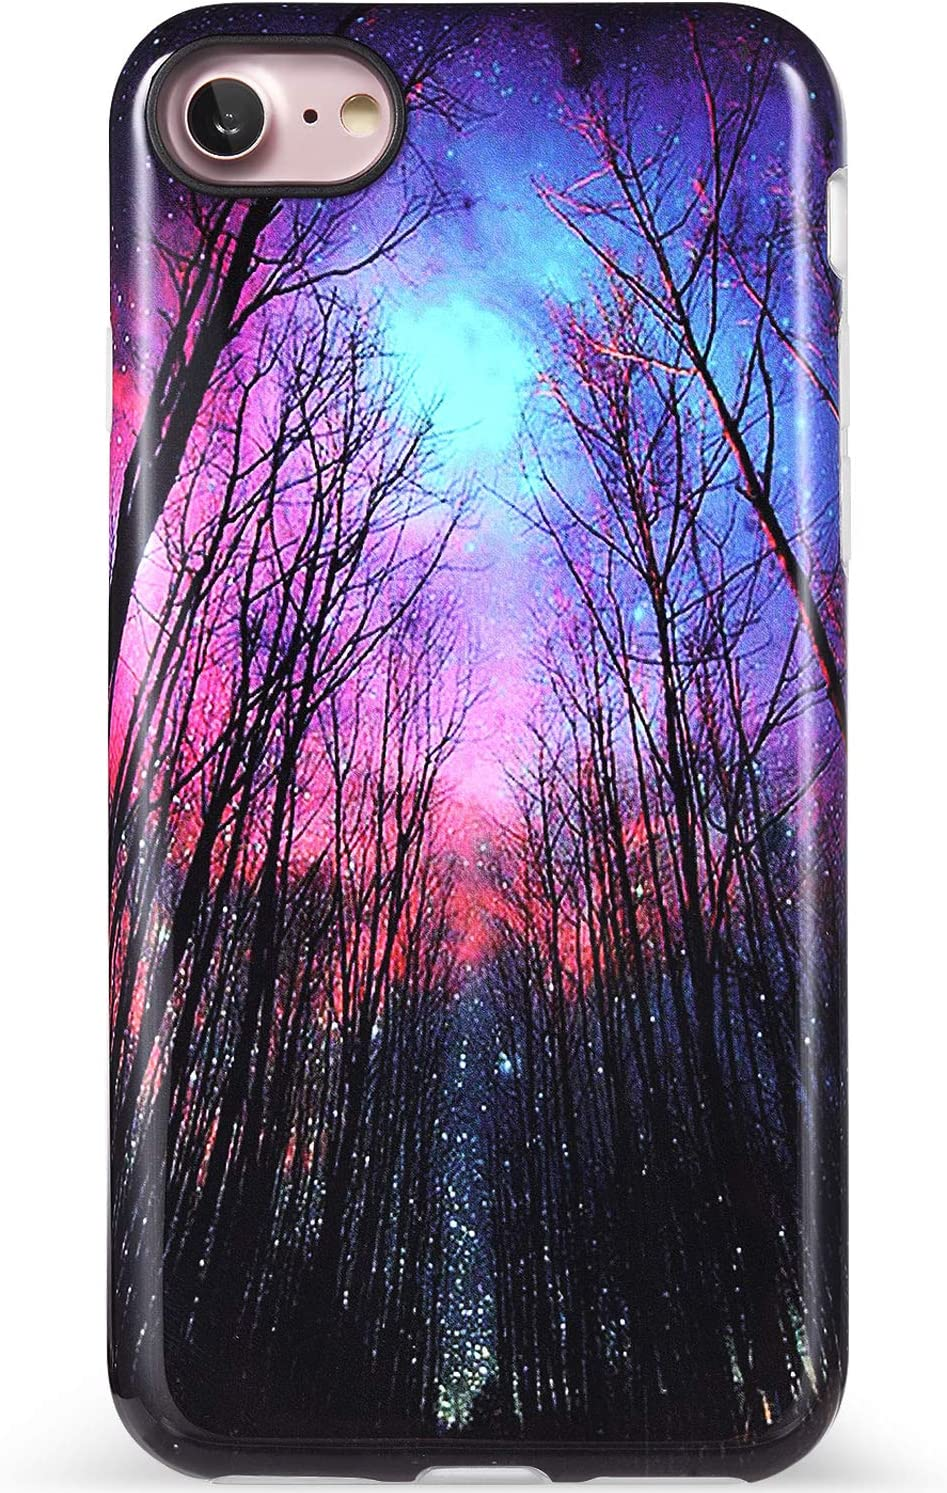 VIVIBIN iPhone SE 2020 Case,iPhone 8 Case,iPhone 7 Case,Trees Starry Night Design Clear Bumper Soft TPU Cover Slim Fit Protective Phone Case for iPhone 7/iPhone 8/New iPhone SE